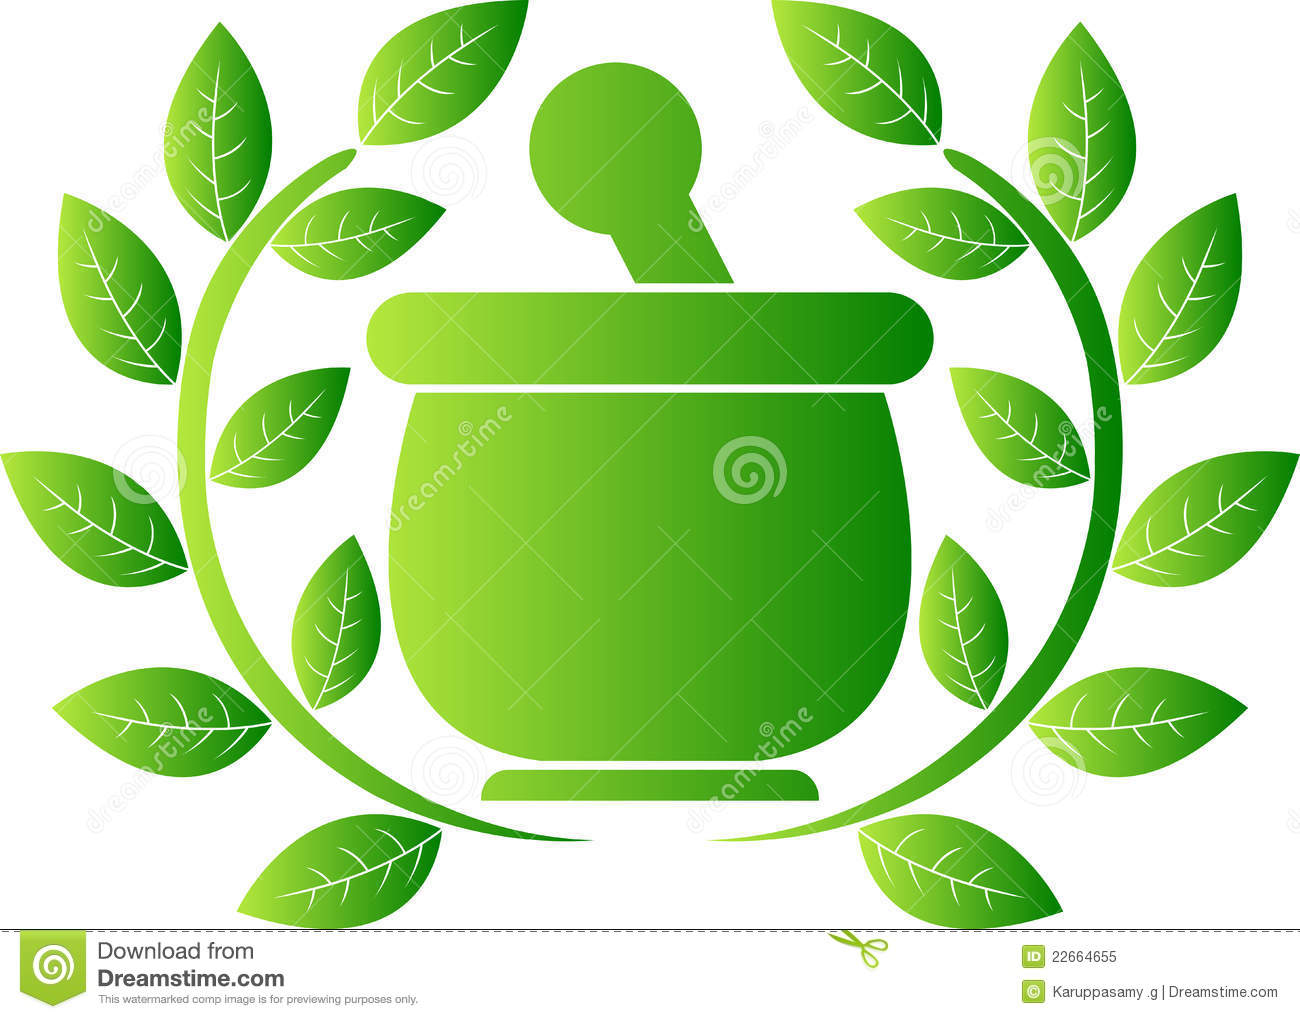 Illustration art of a green herbal logo with isolated background.